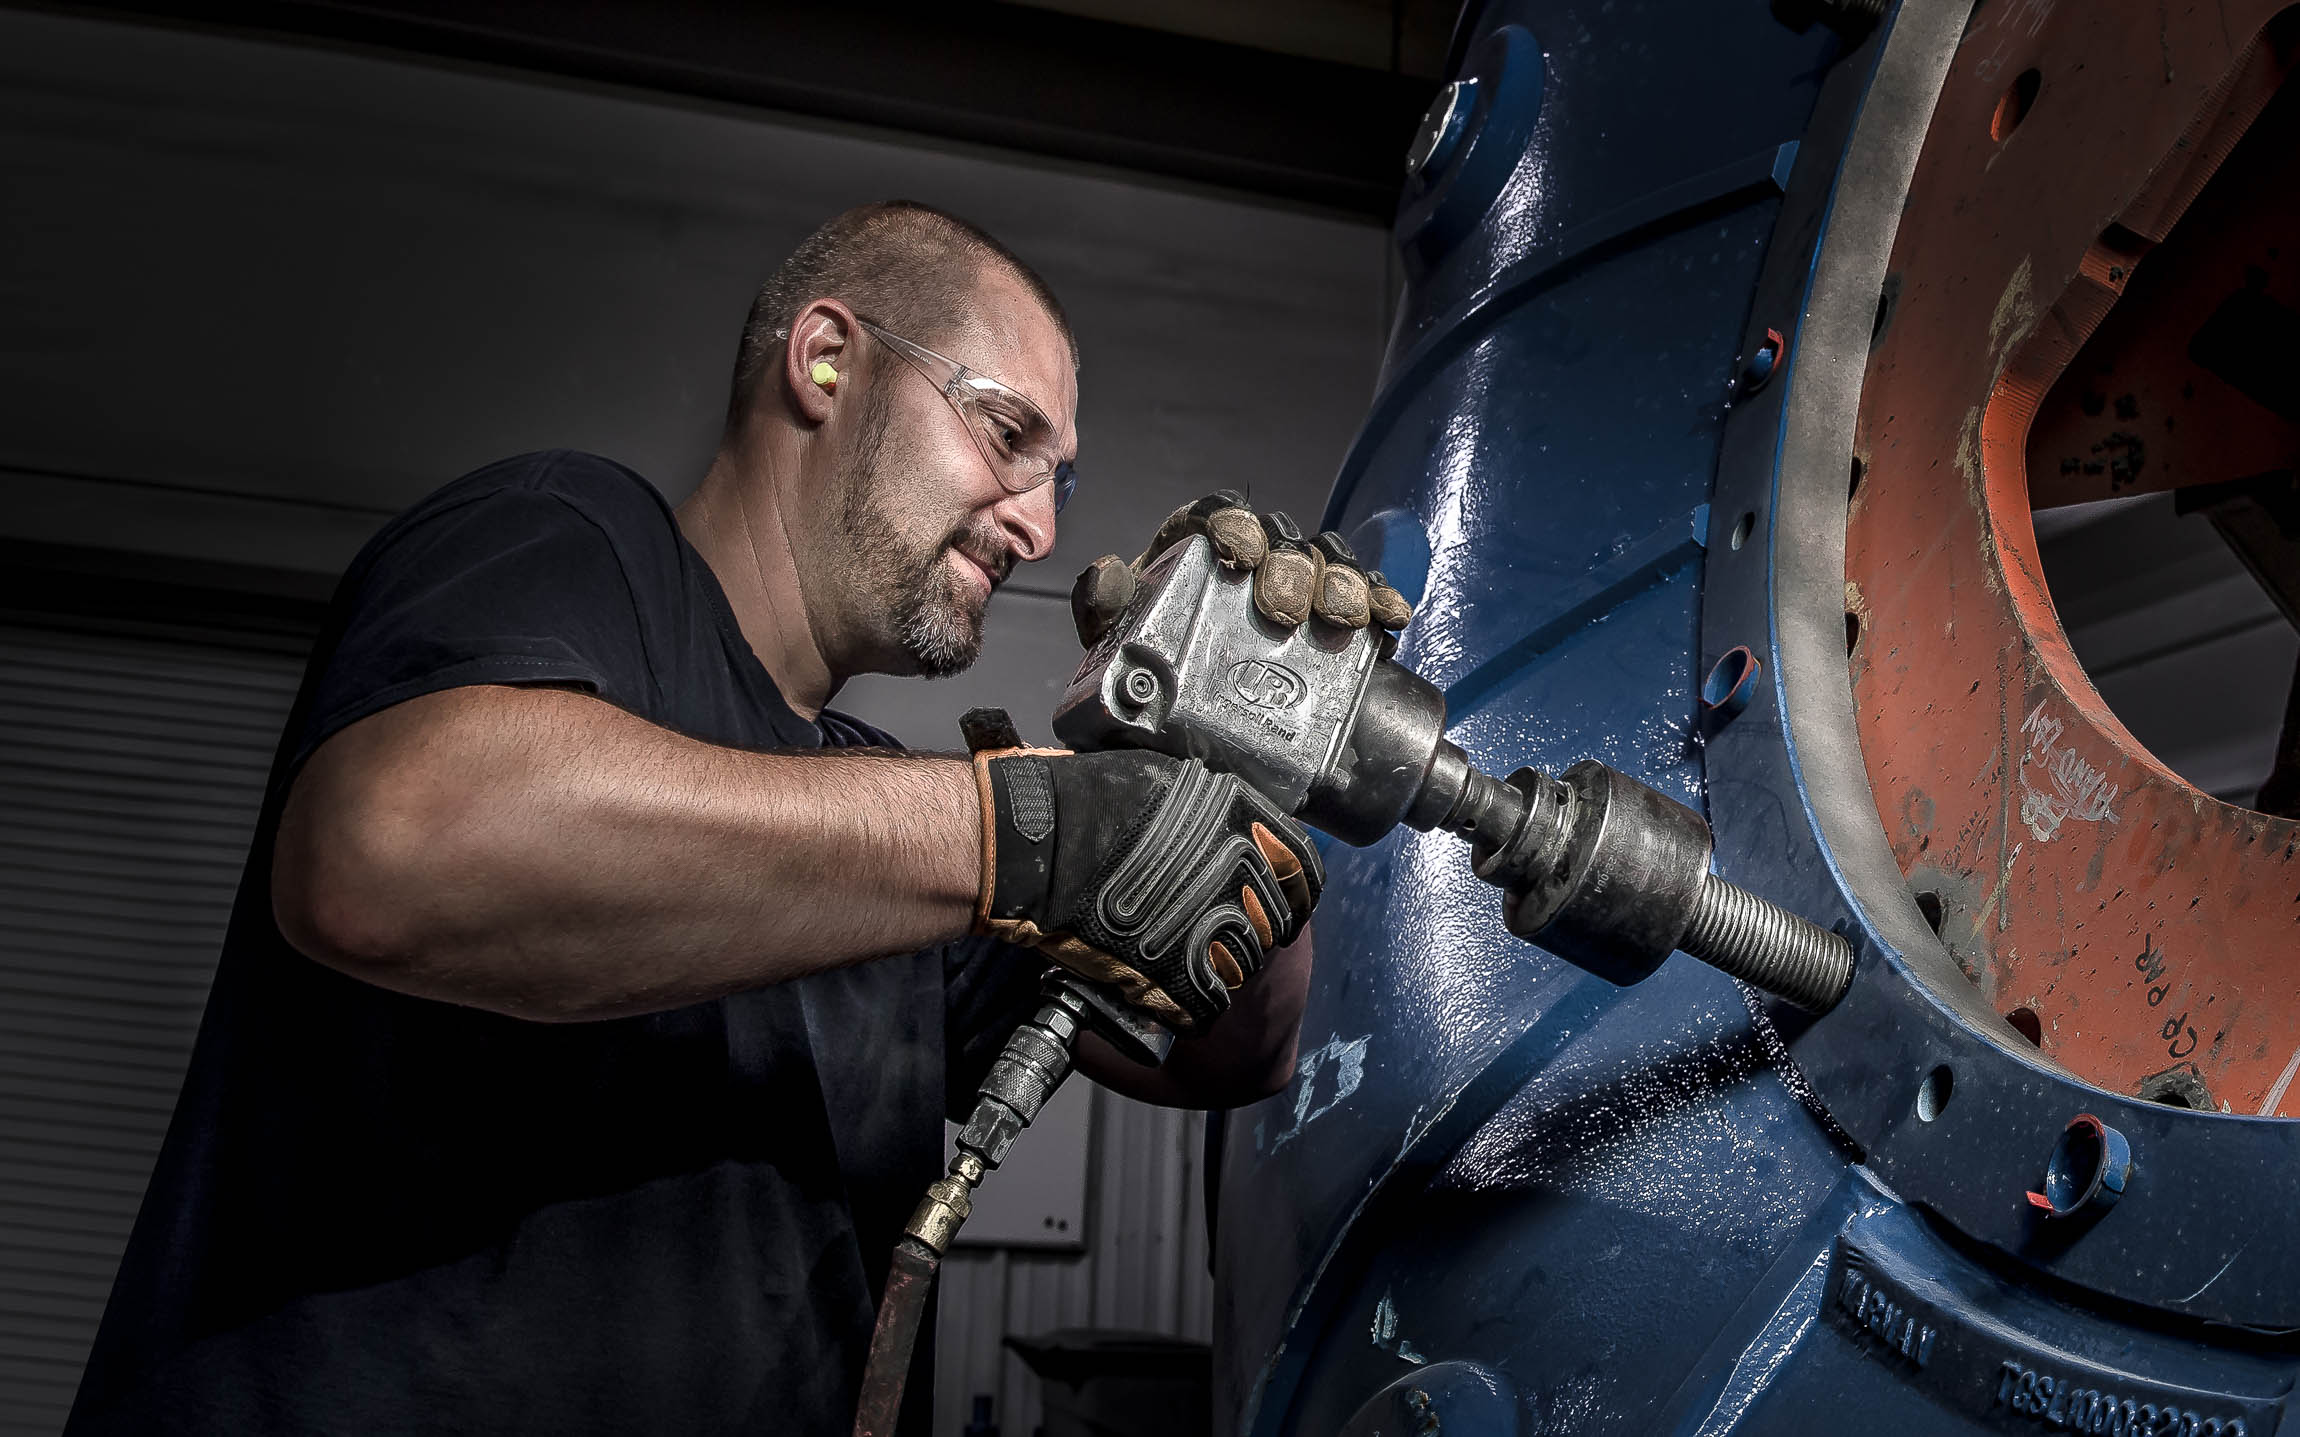 Manufacturing technician captured by industrial photographer